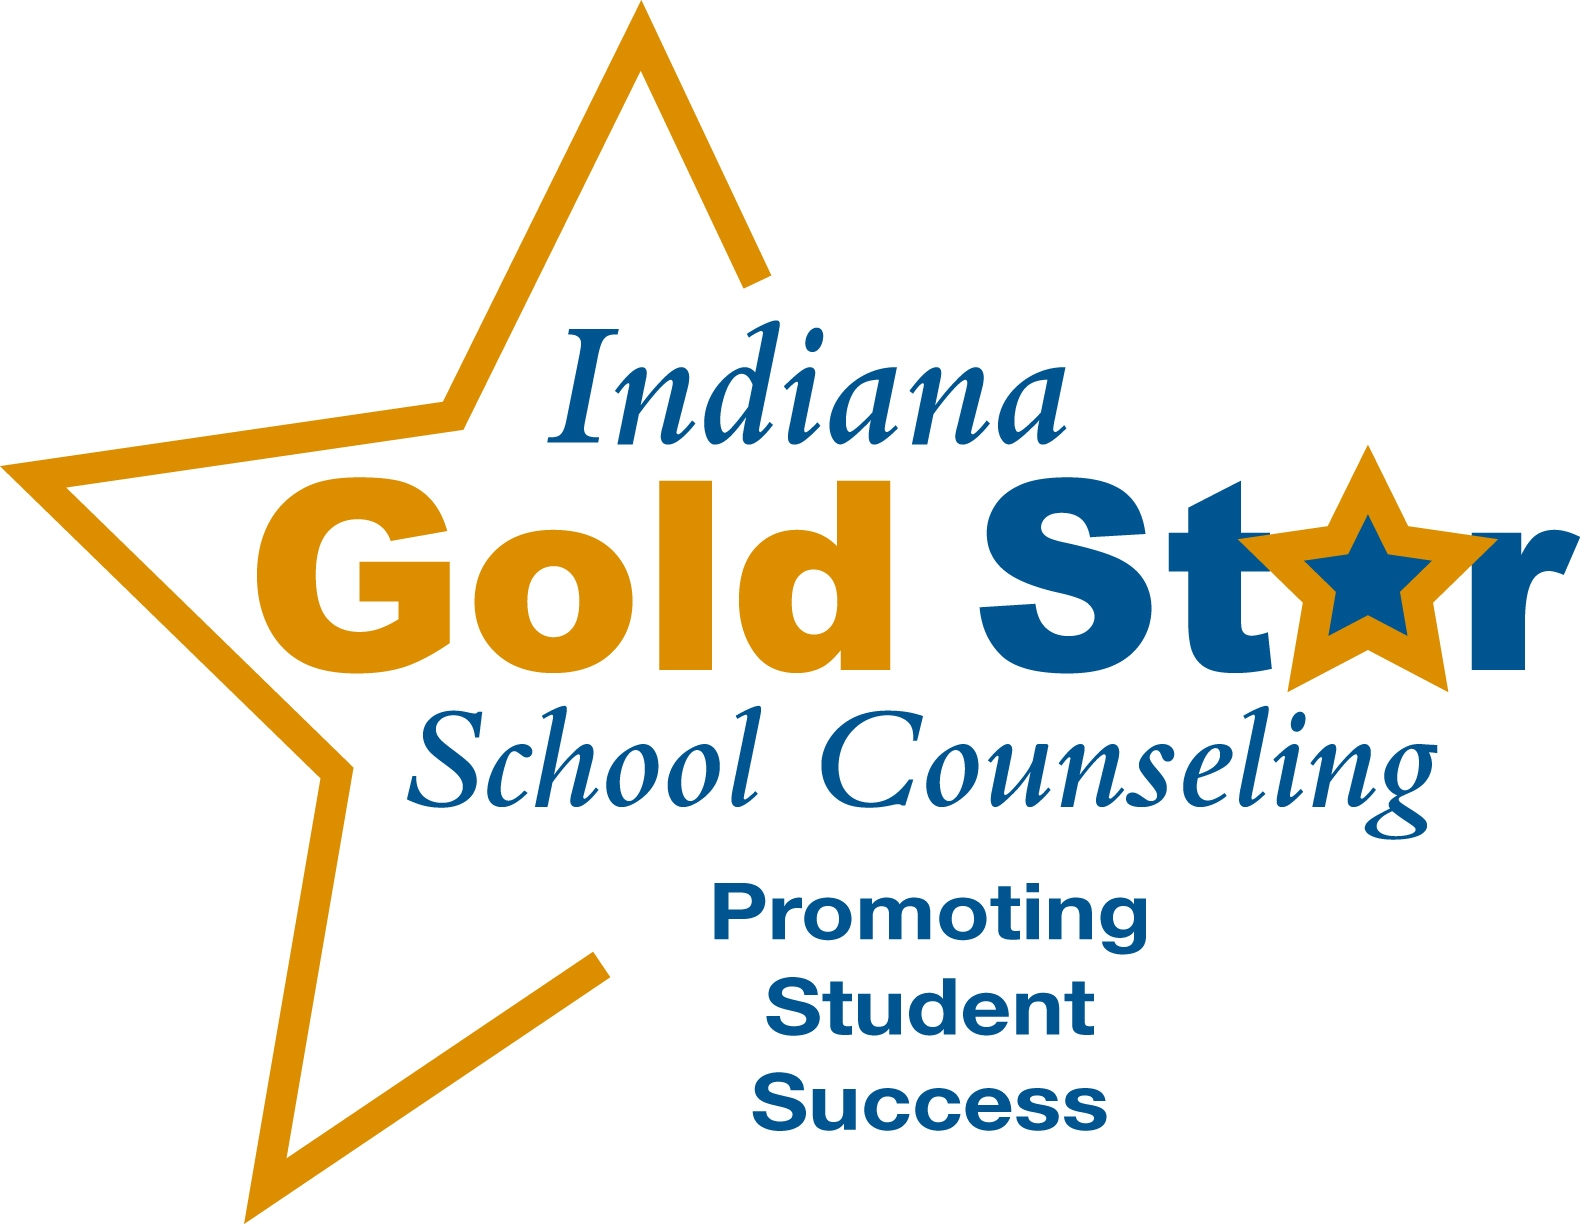 Indiana Gold Star School Counseling logo